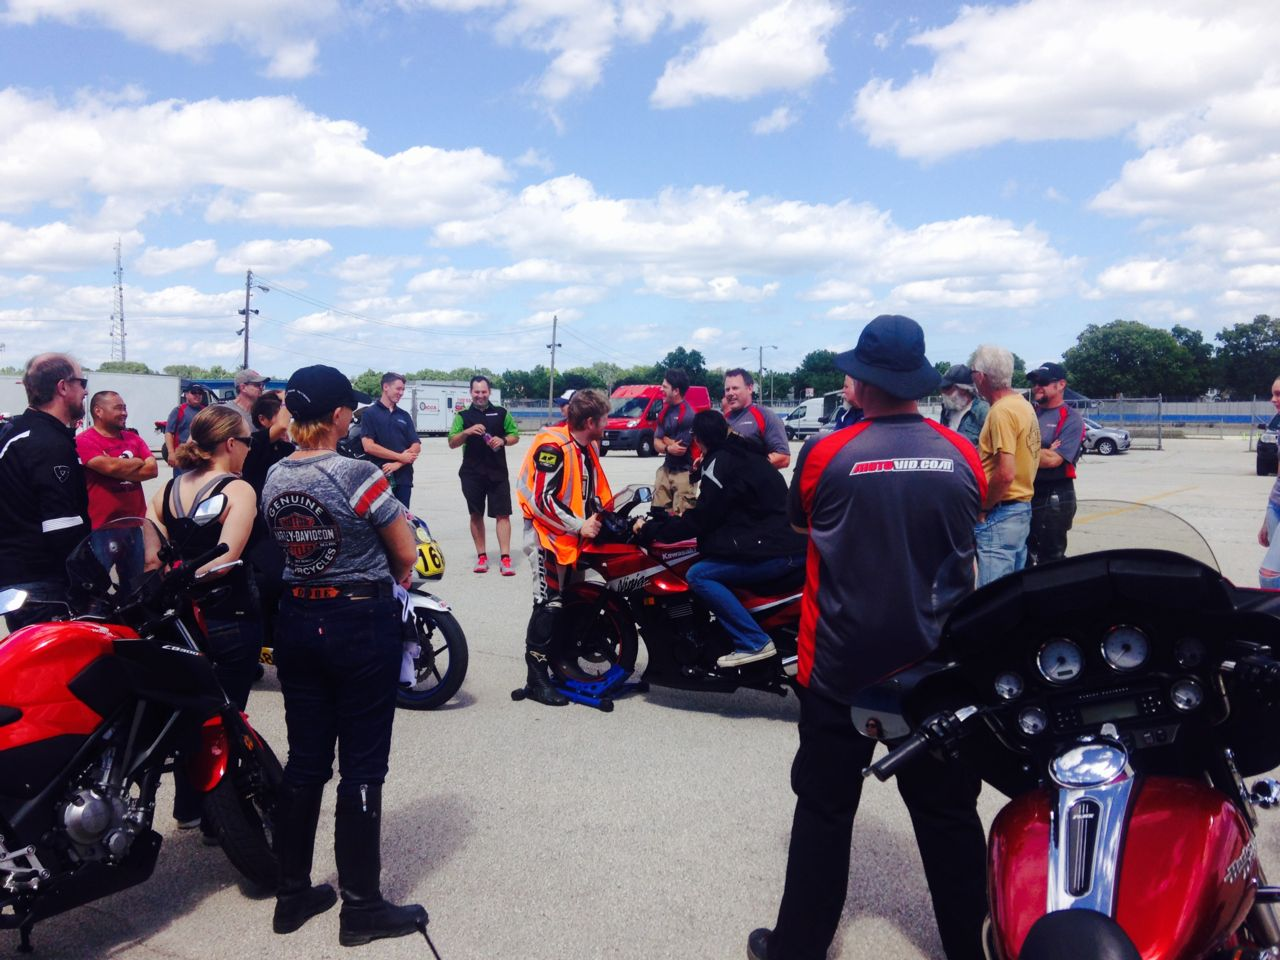 Mentor session at the Milwaukee Mile. Photo Source: Hupy and Abraham S.C.